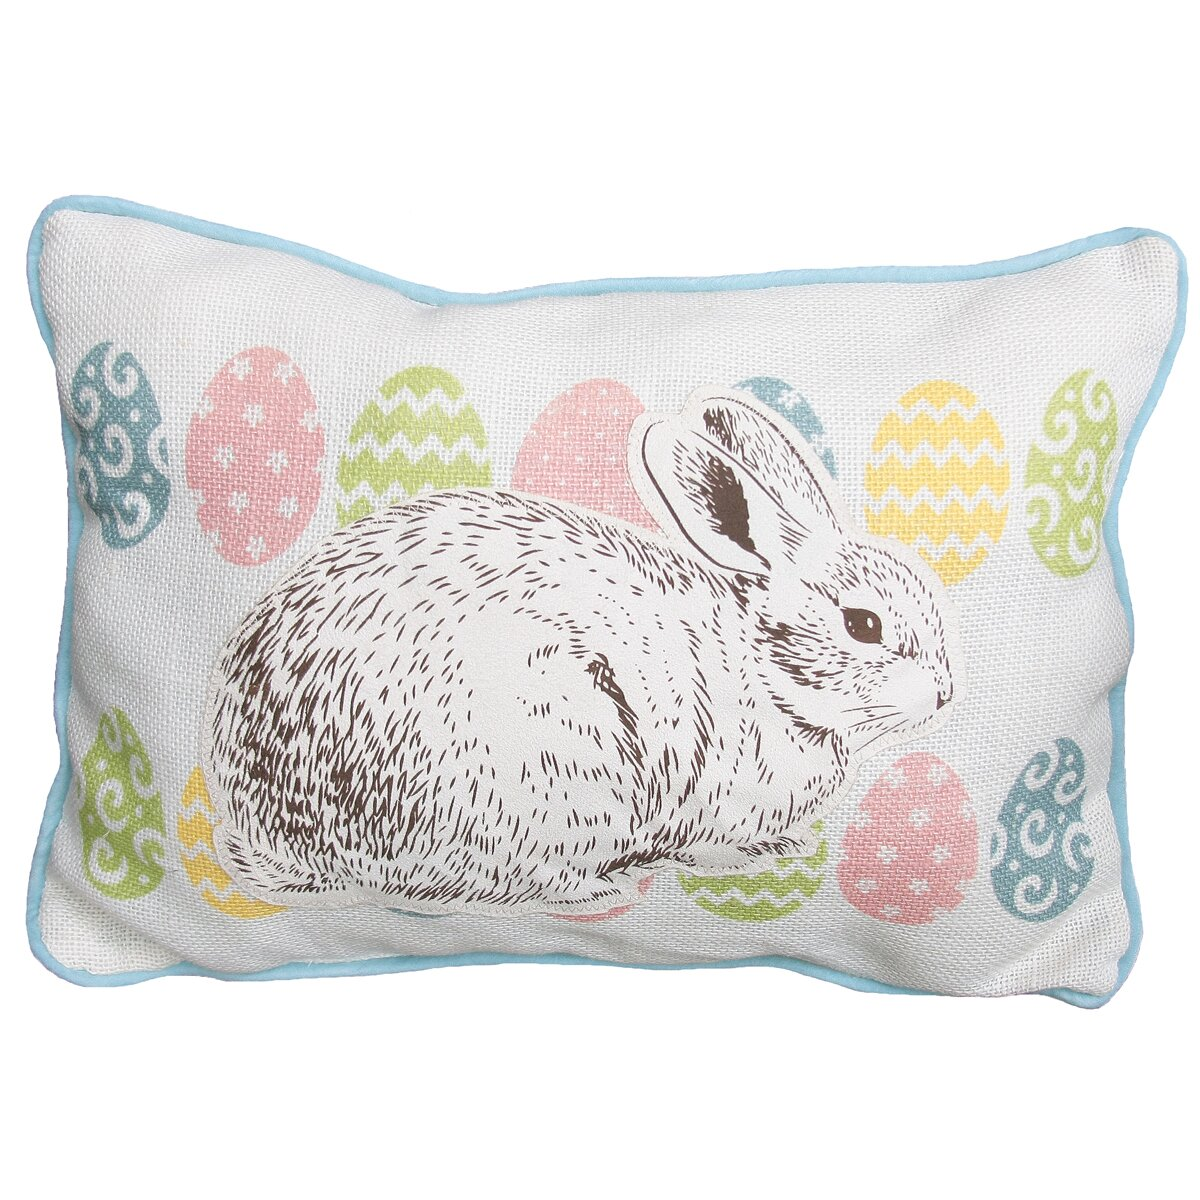 Xia Home Fashions Bunny Eggs Printed Applique Easter Decorative Jute Lumbar Pillow & Reviews ...